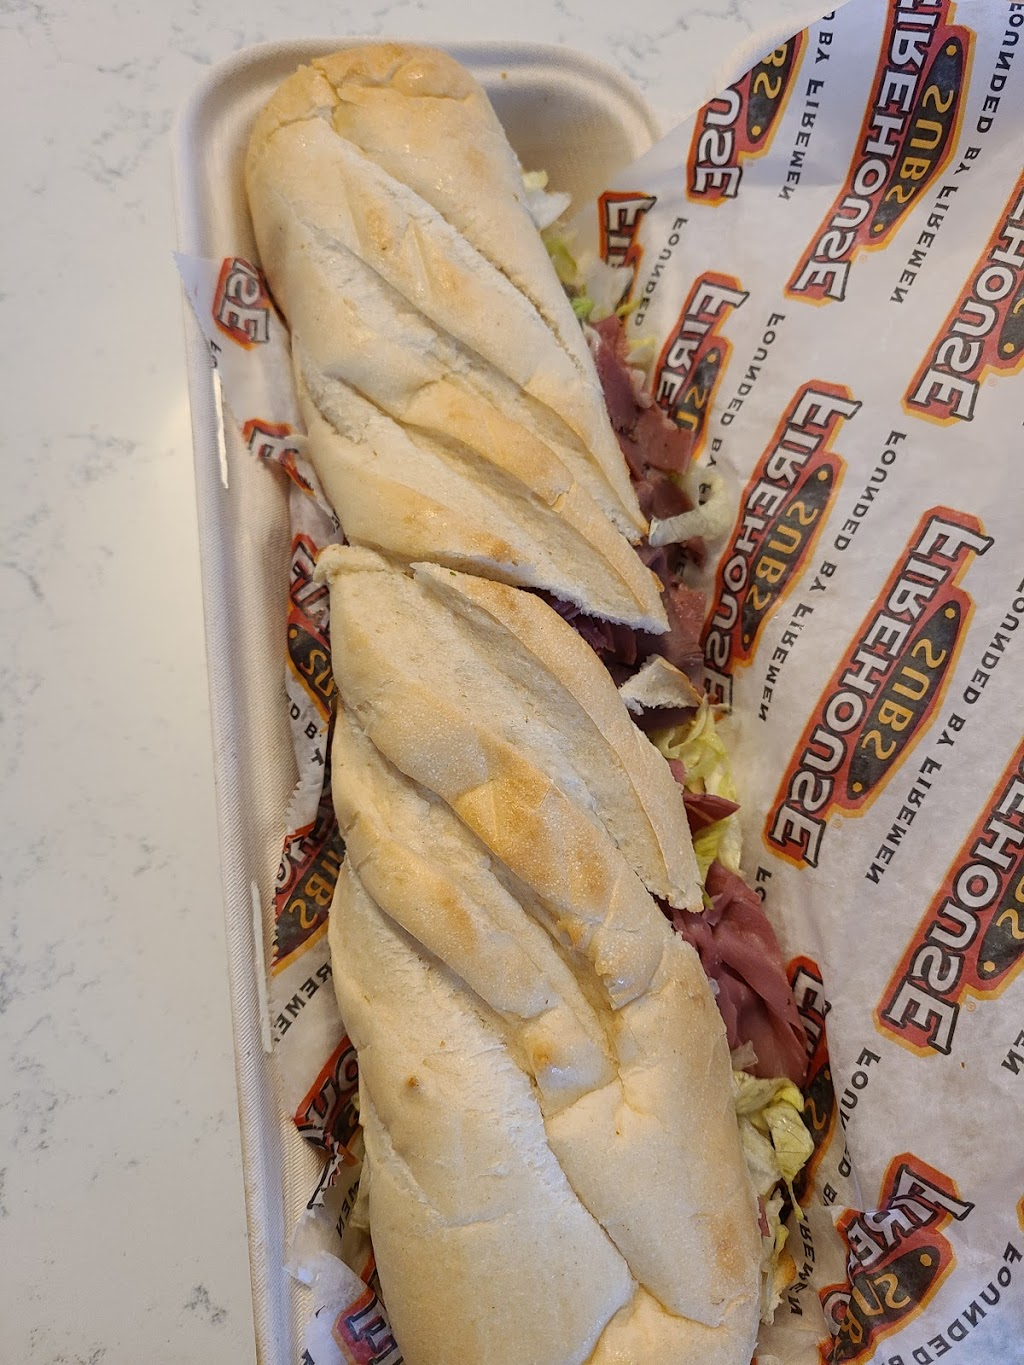 Firehouse Subs | restaurant | 140 Highway 8 #9, Stoney Creek, ON L8G 1C2, Canada | 9056647476 OR +1 905-664-7476